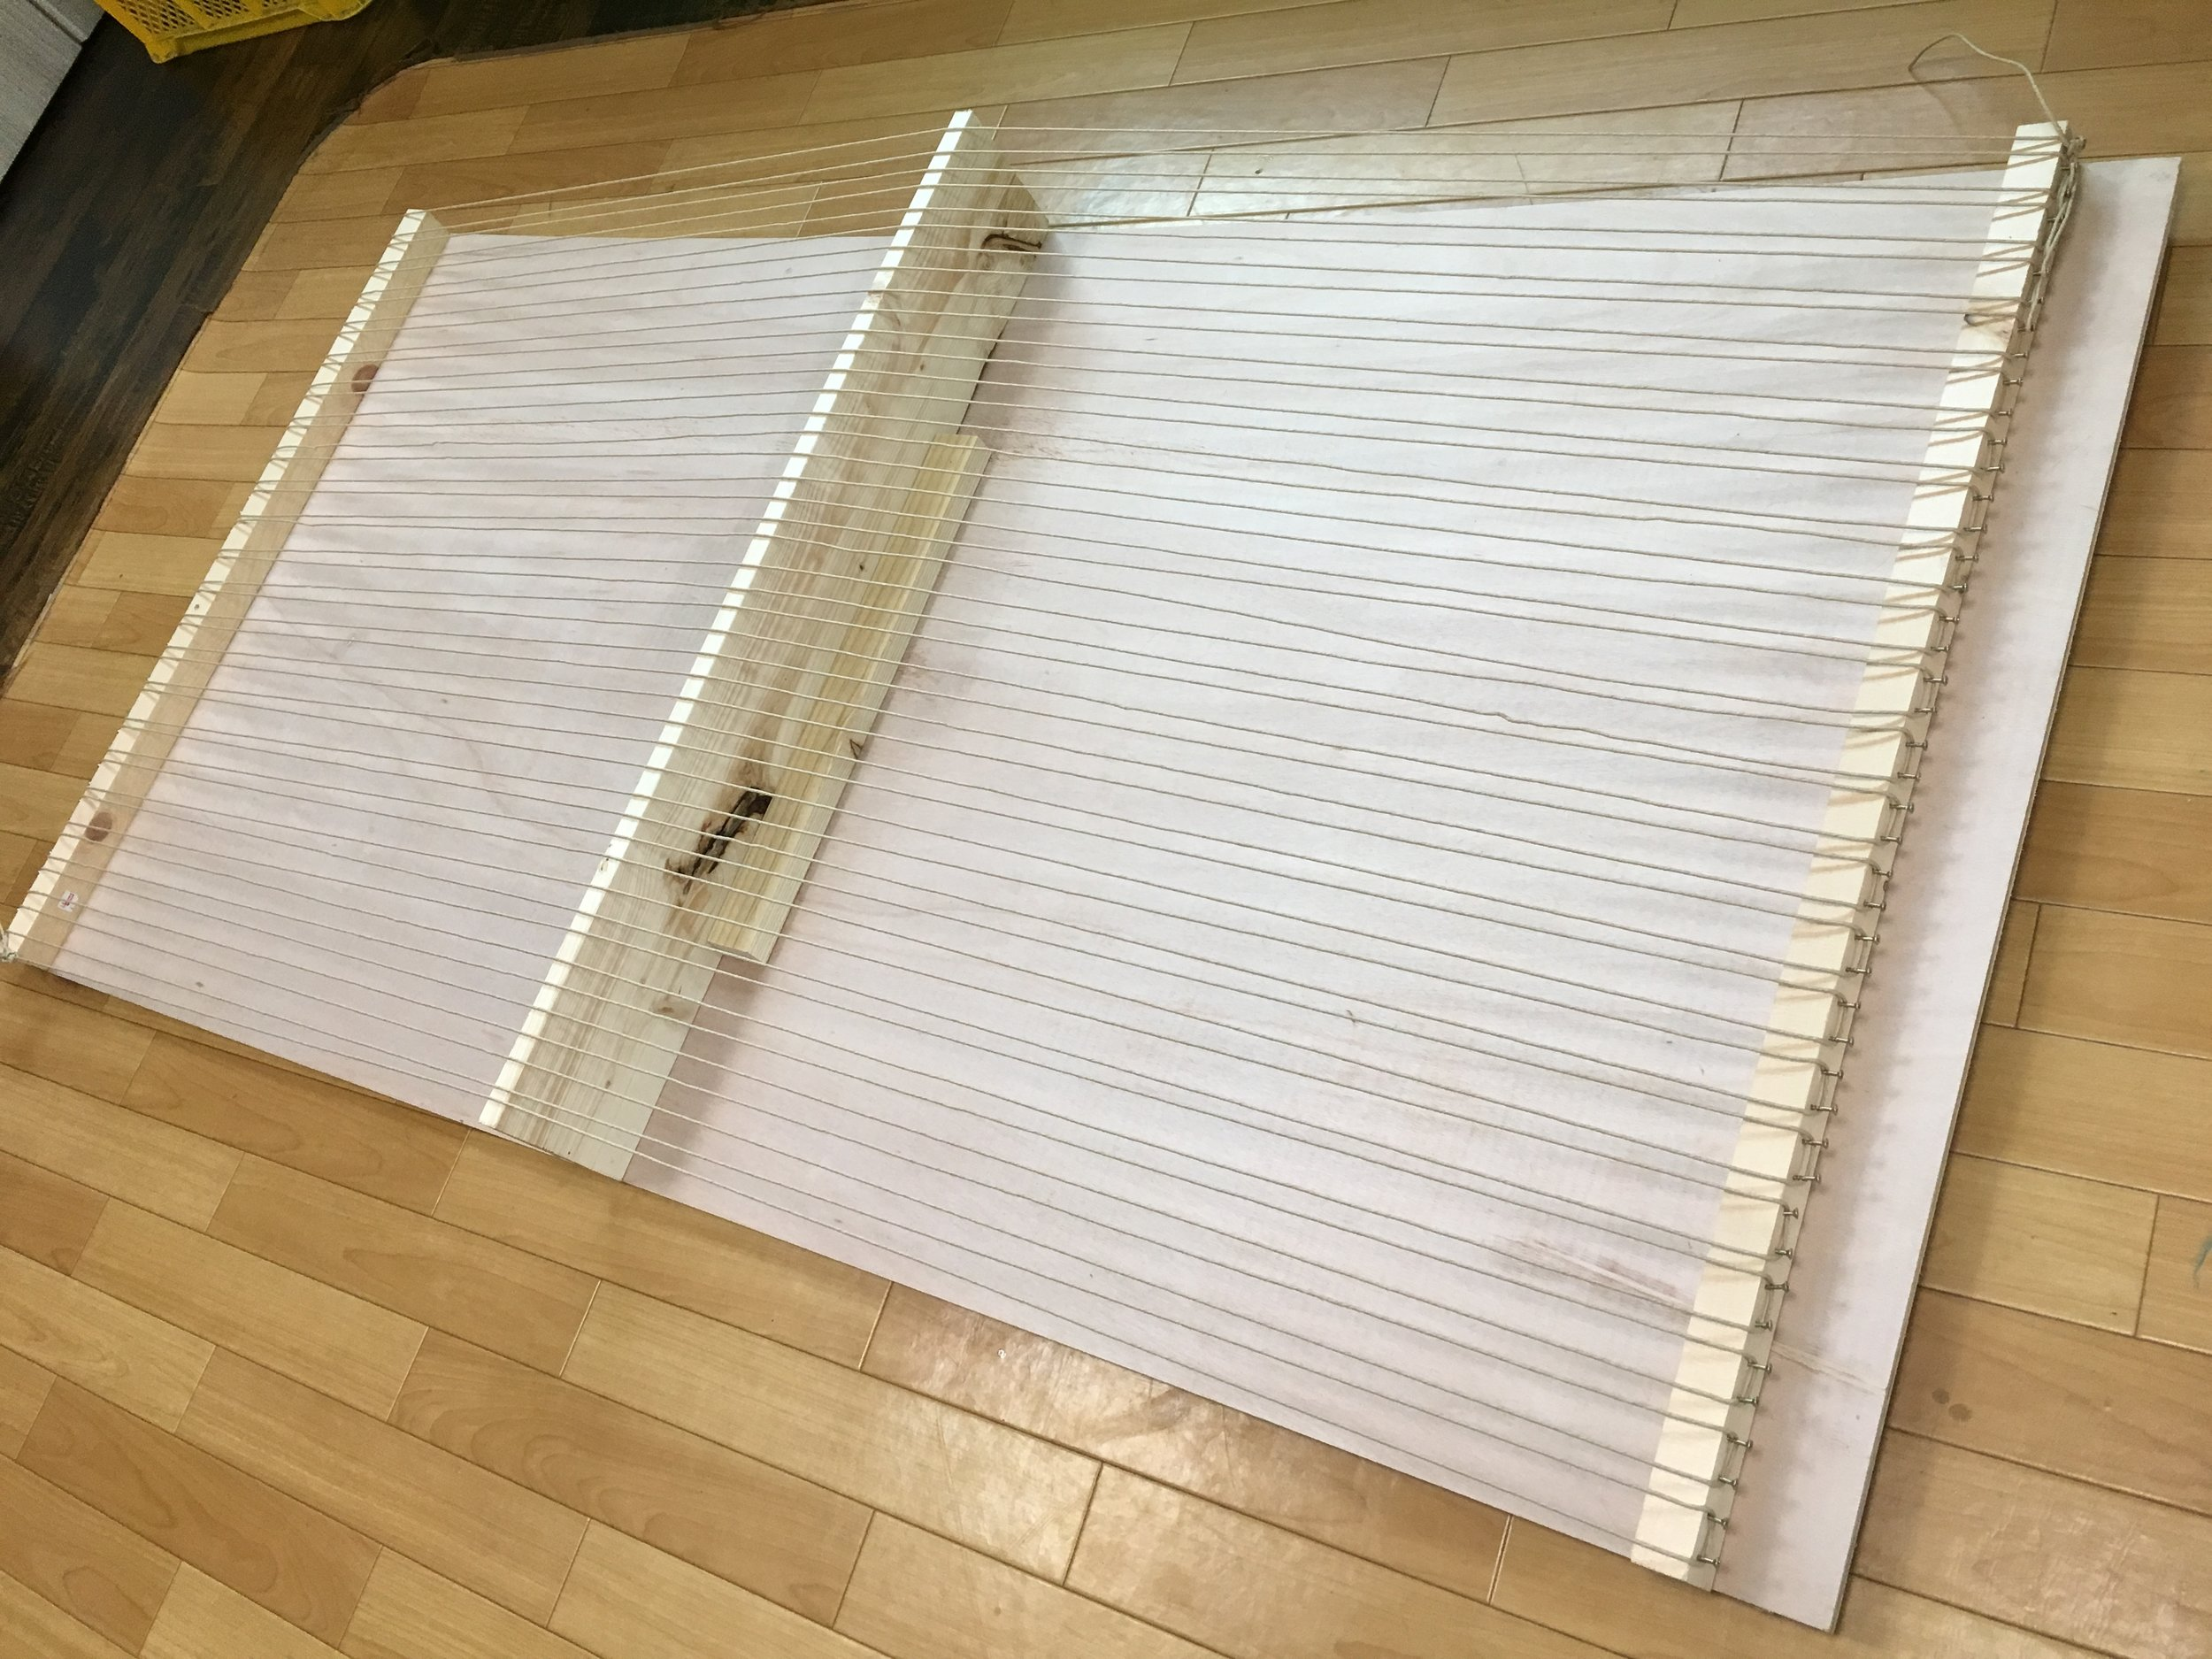 Giant loom completed